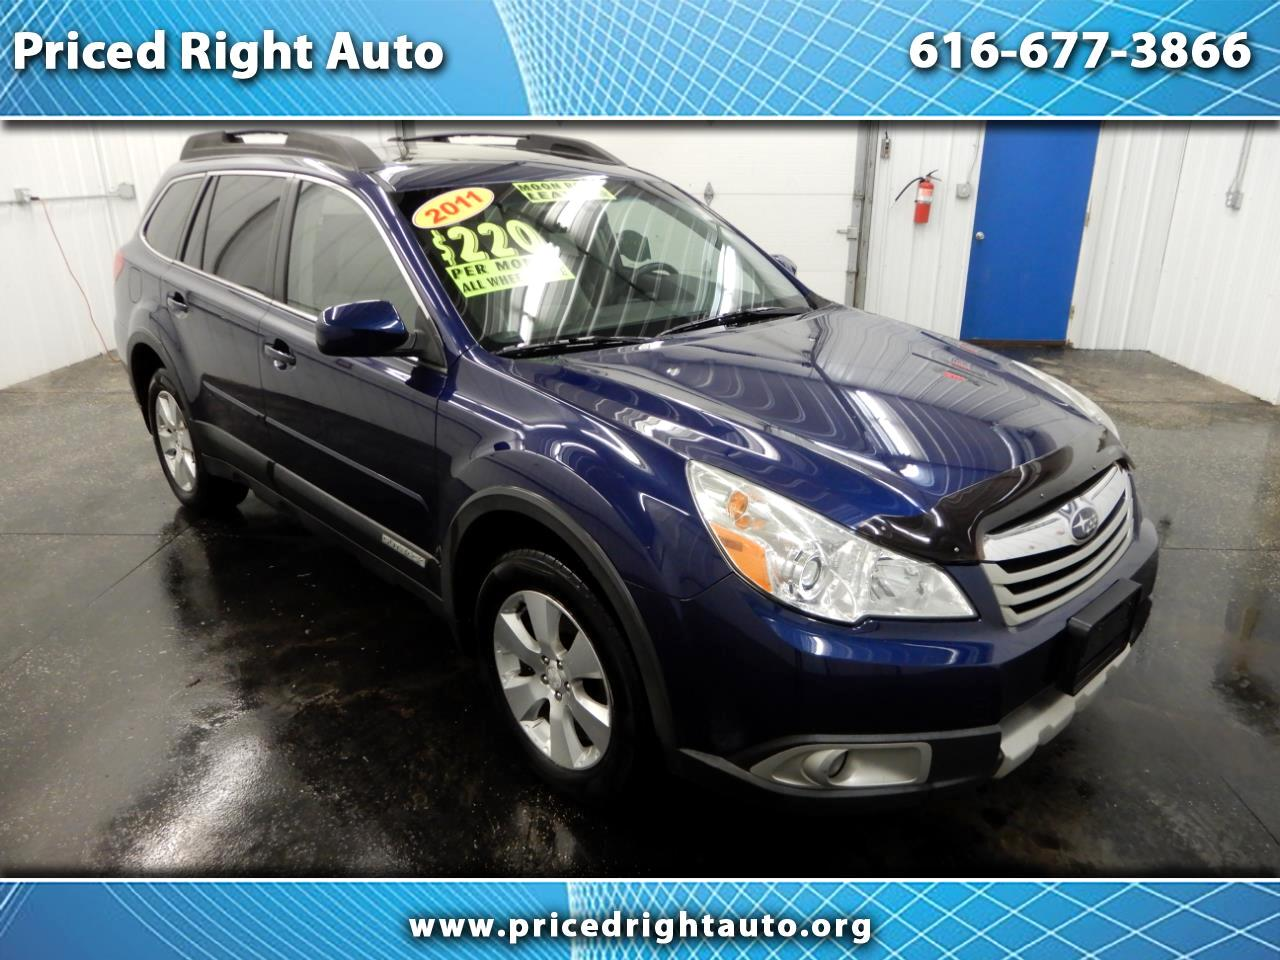 2011 Subaru Outback 4dr Wgn H6 Auto 3.6R Limited Pwr Moon